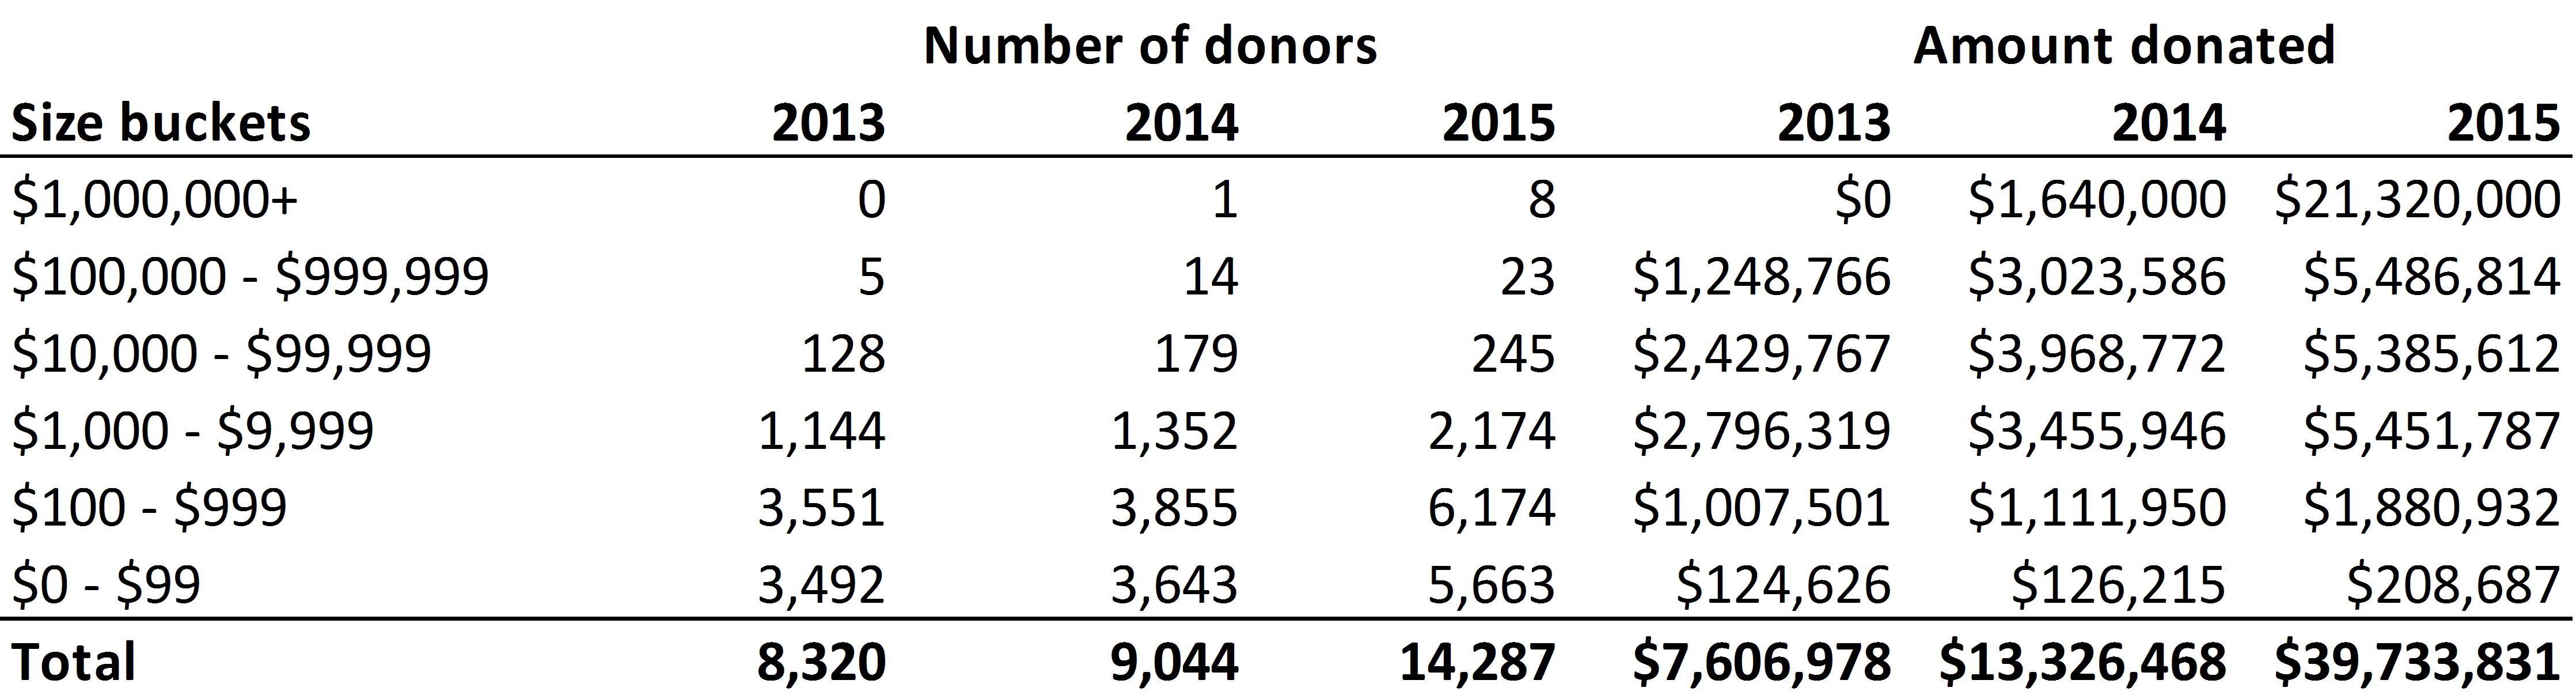 GiveWell money moved by donor size (2015)